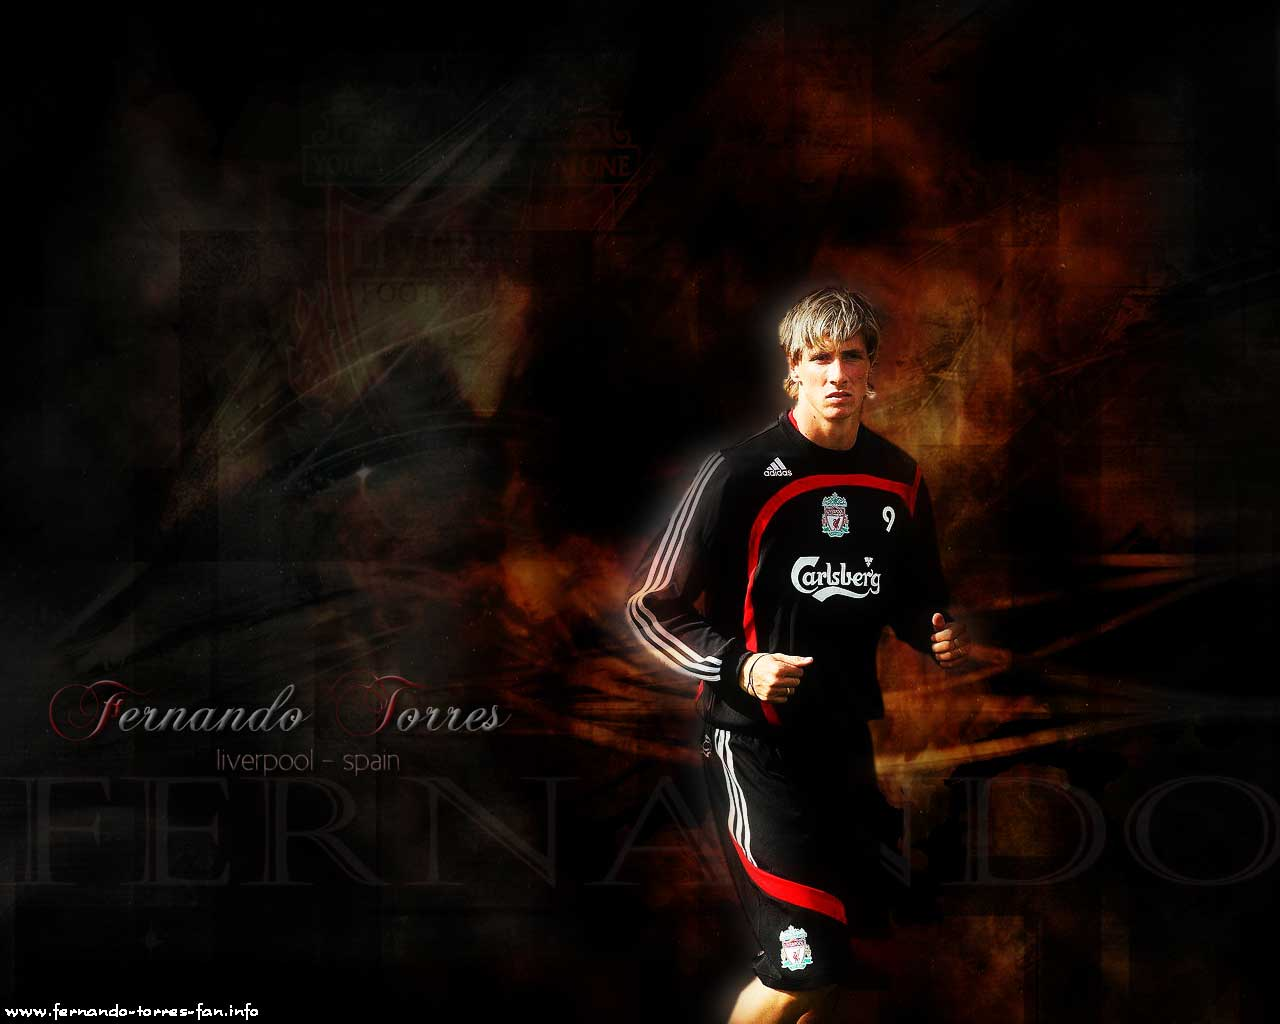 Fernando Torres Wallpaper celebrity sport 1280x1024